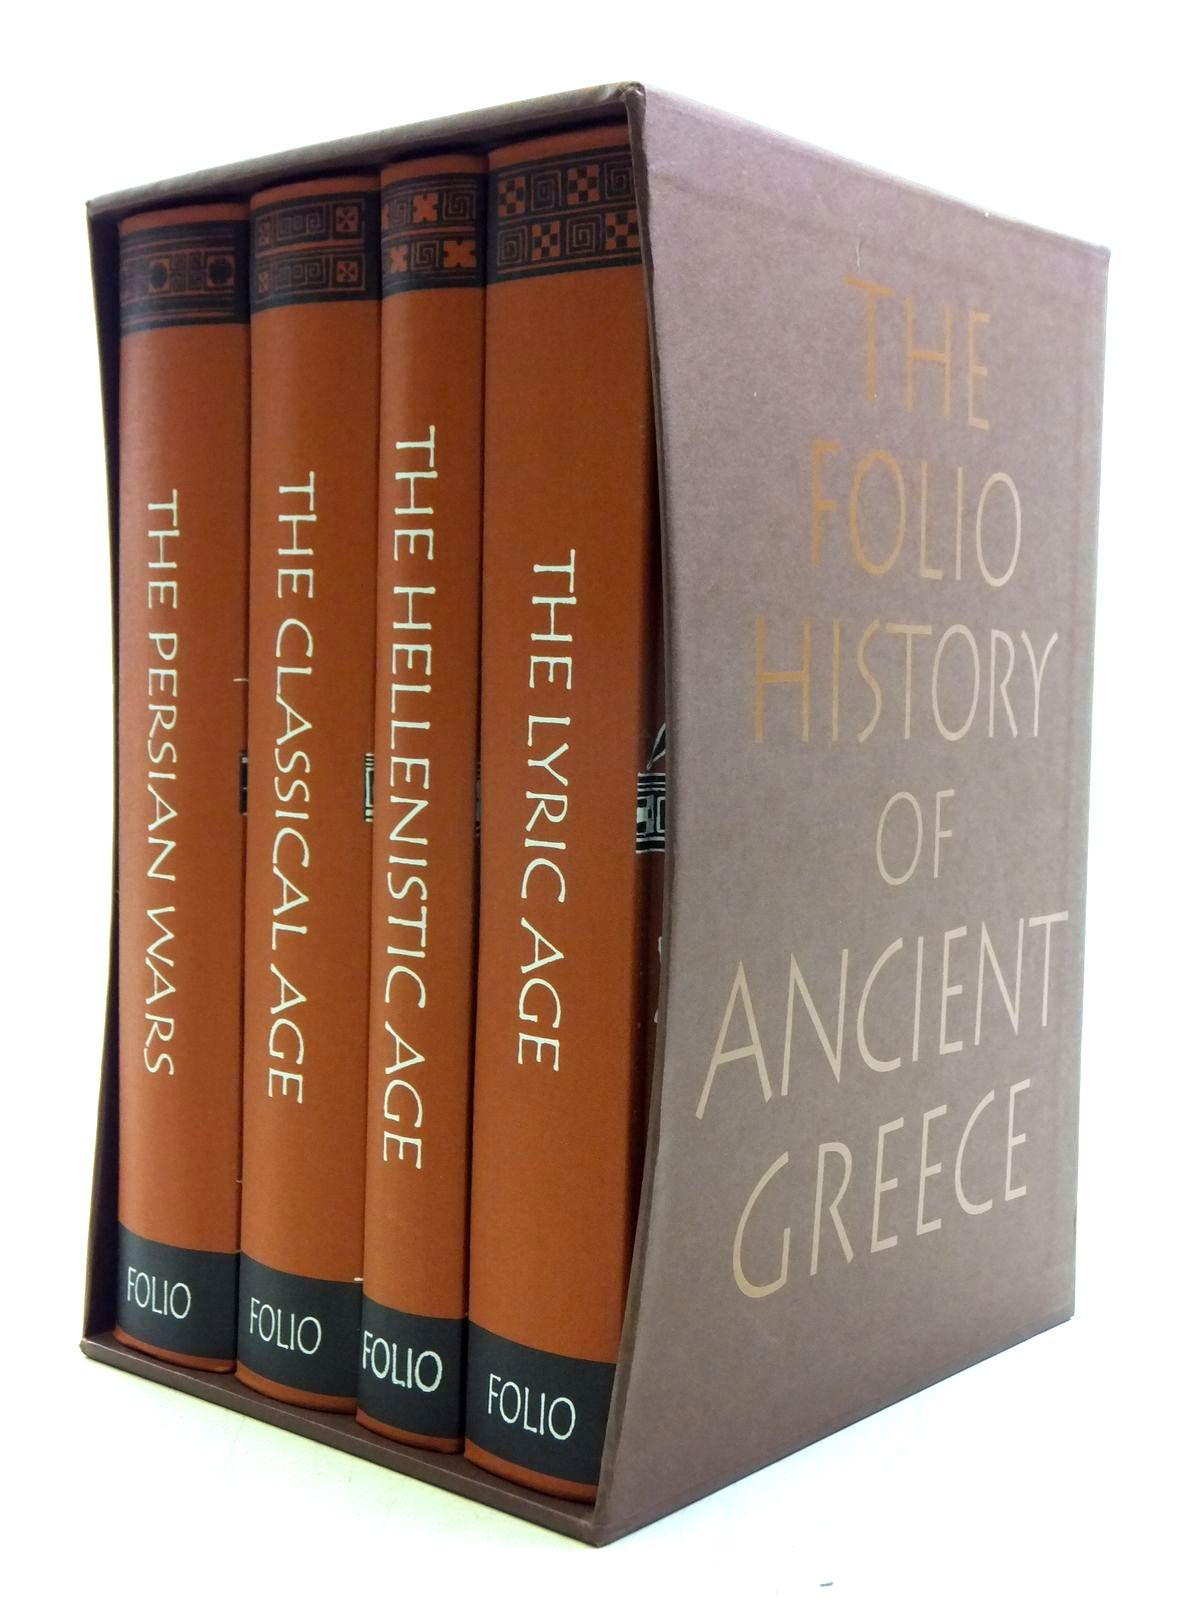 Photo of THE FOLIO HISTORY OF ANCIENT GREECE (4 VOLUMES) published by Folio Society (STOCK CODE: 2120519)  for sale by Stella & Rose's Books